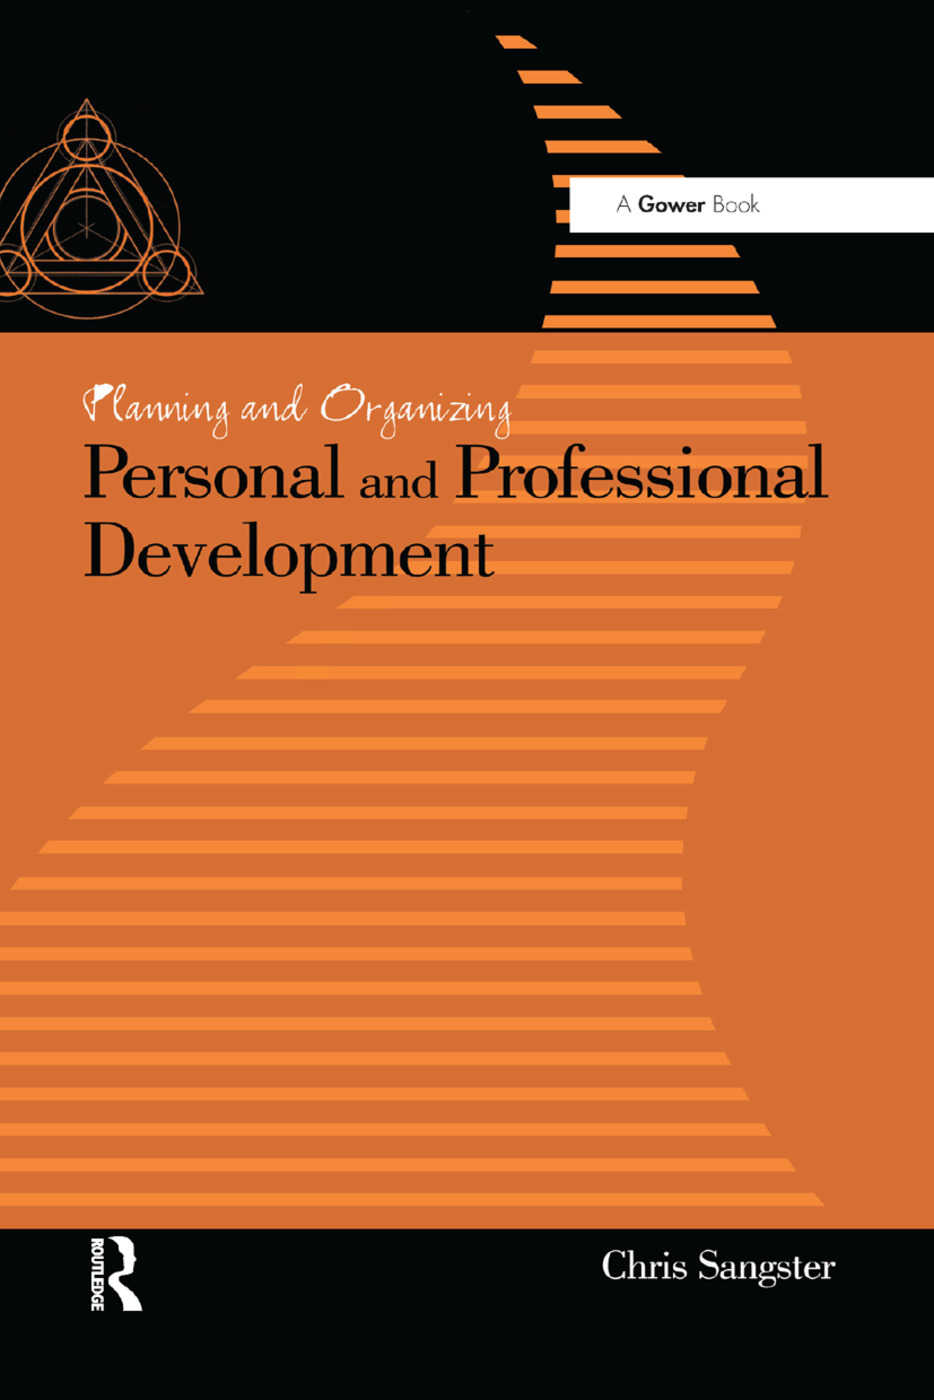 Planning and Organizing Personal and Professional Development: 1st Edition (Paperback) book cover